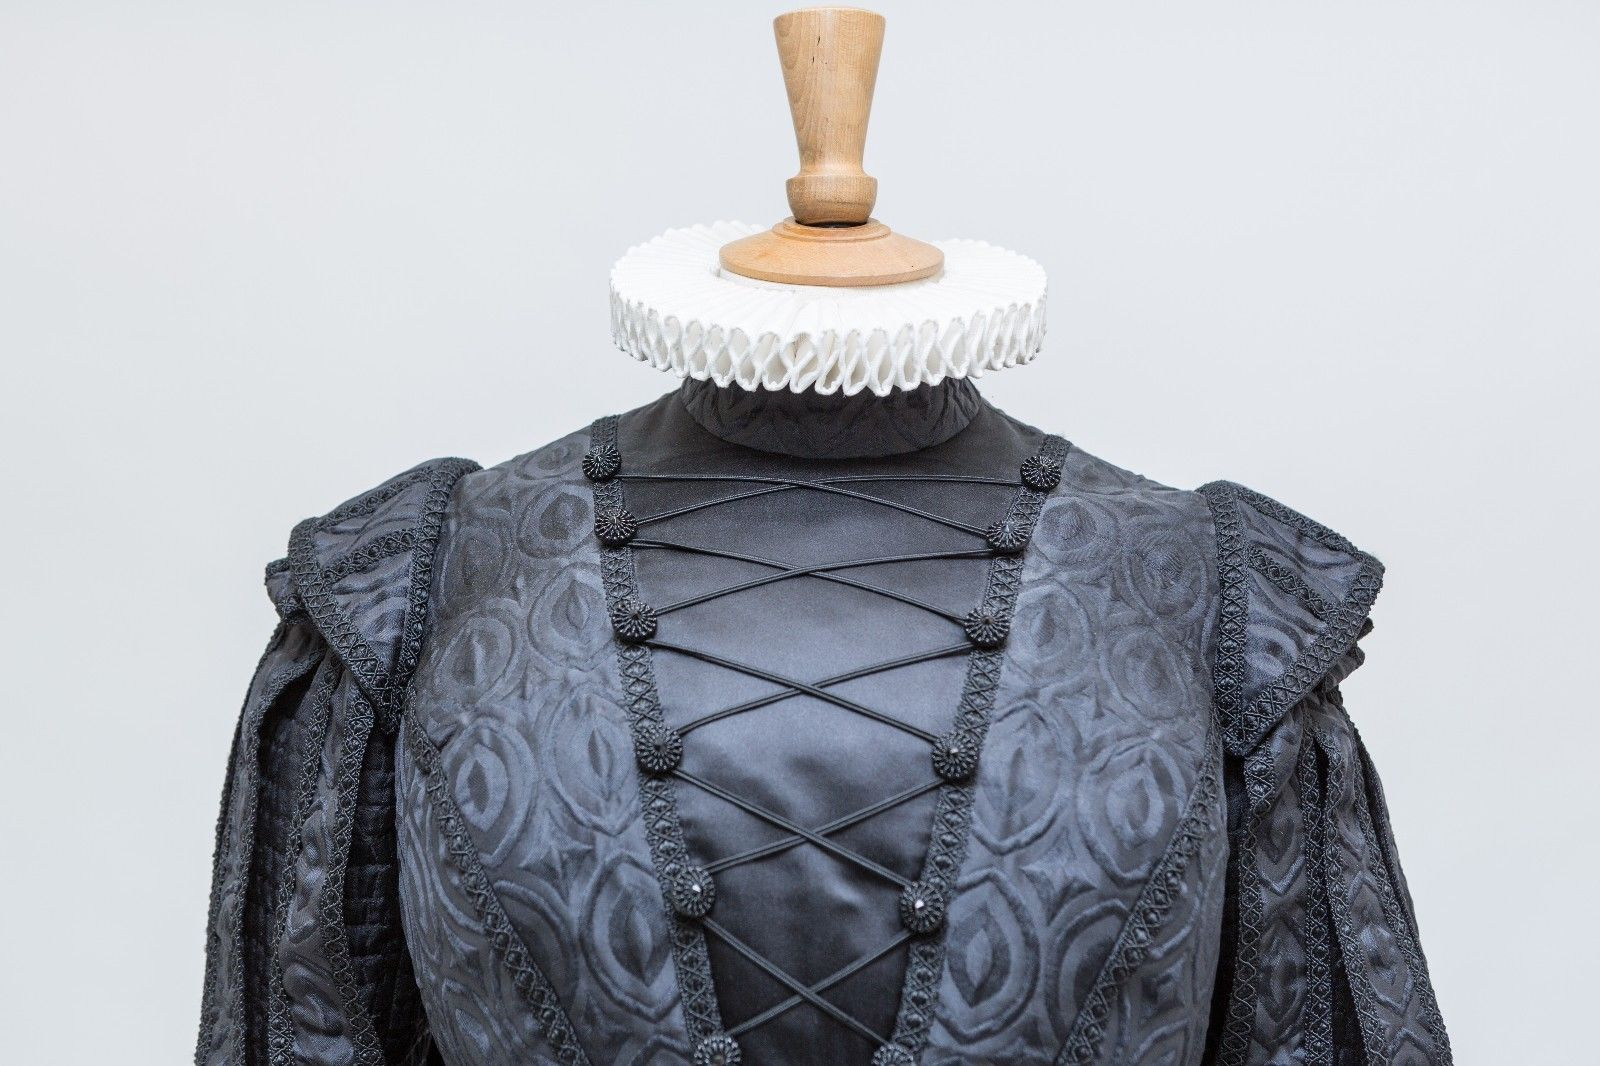 judi dench royal shakespeare company elizabethan doublet